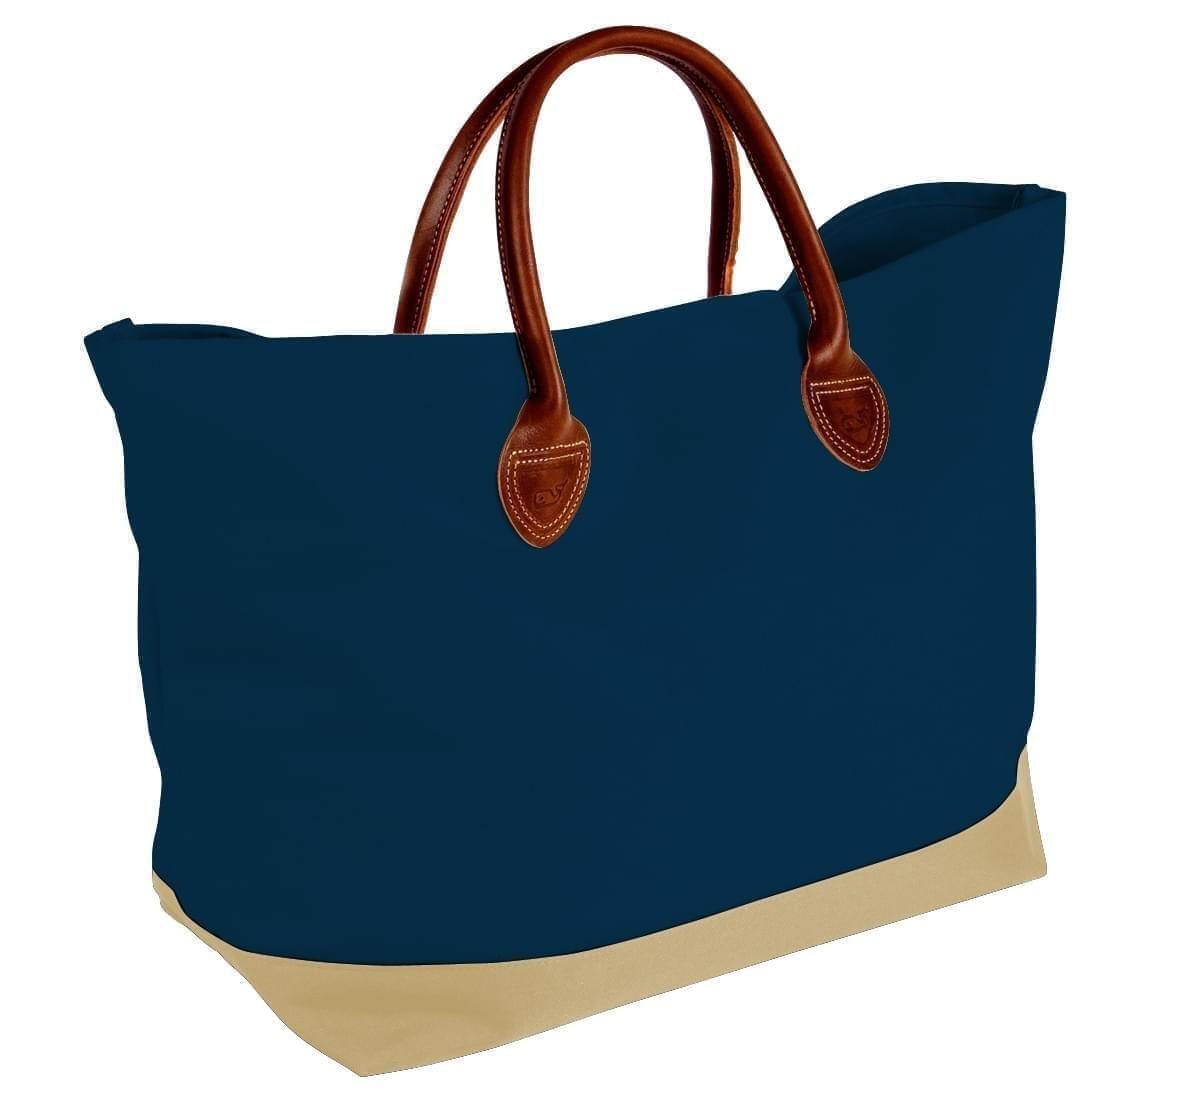 USA Made Canvas Leather Handle Totes, Navy-Khaki, 10899-XC9